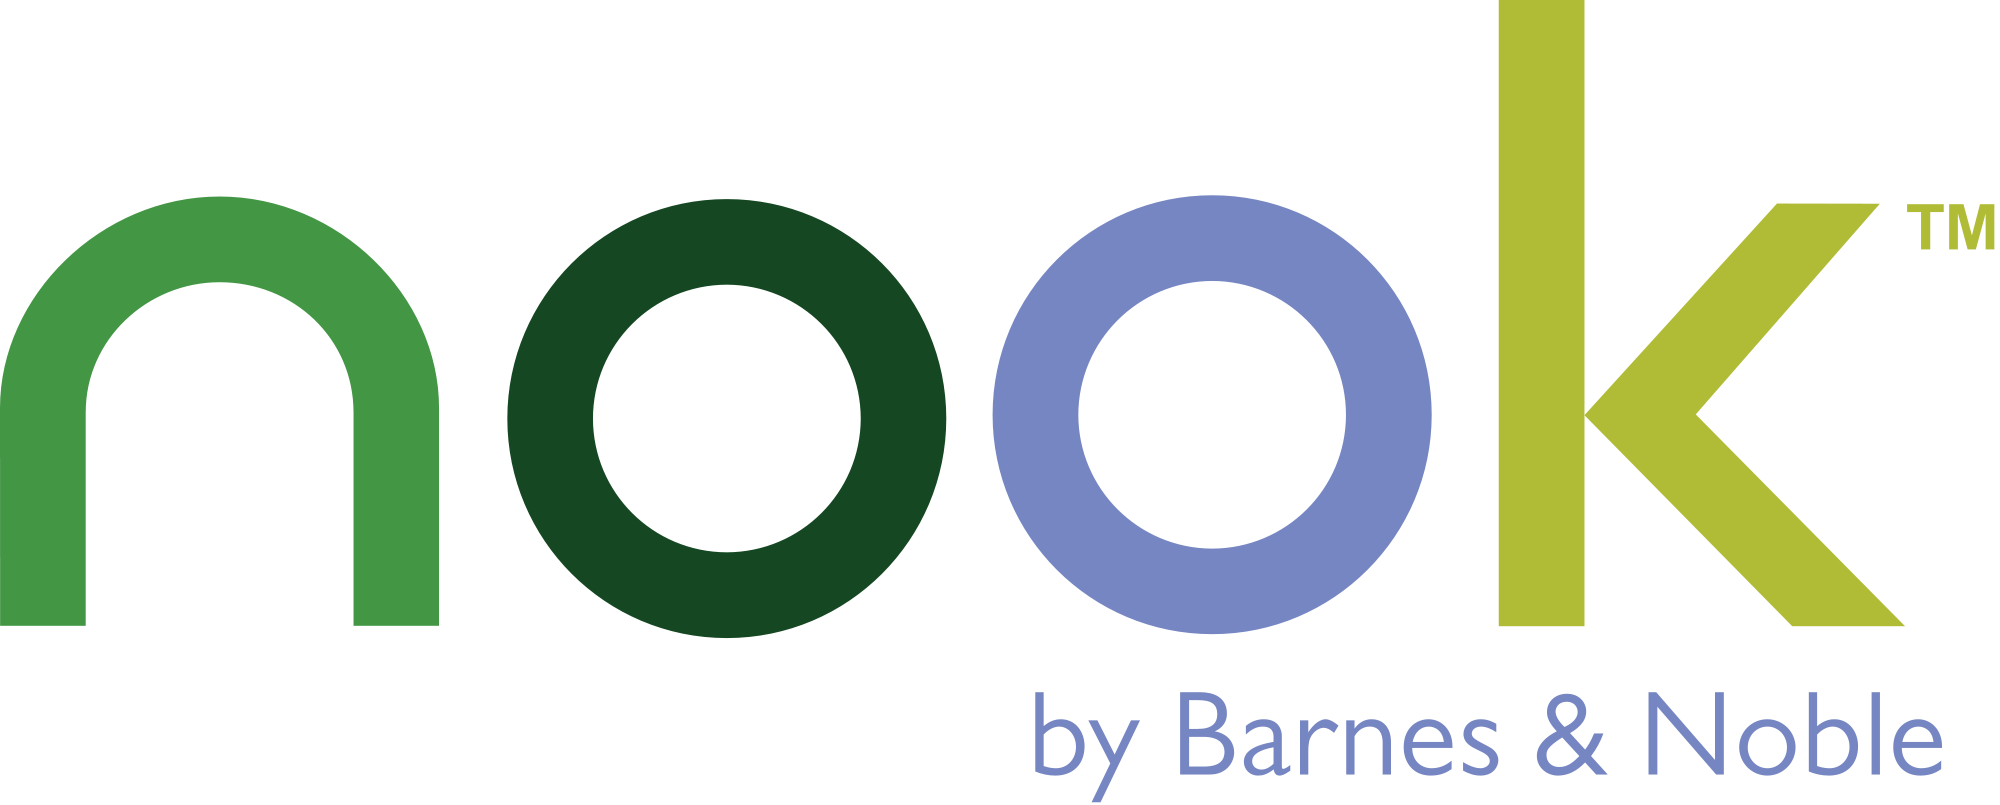 Barnes and noble logo png. File b n nook